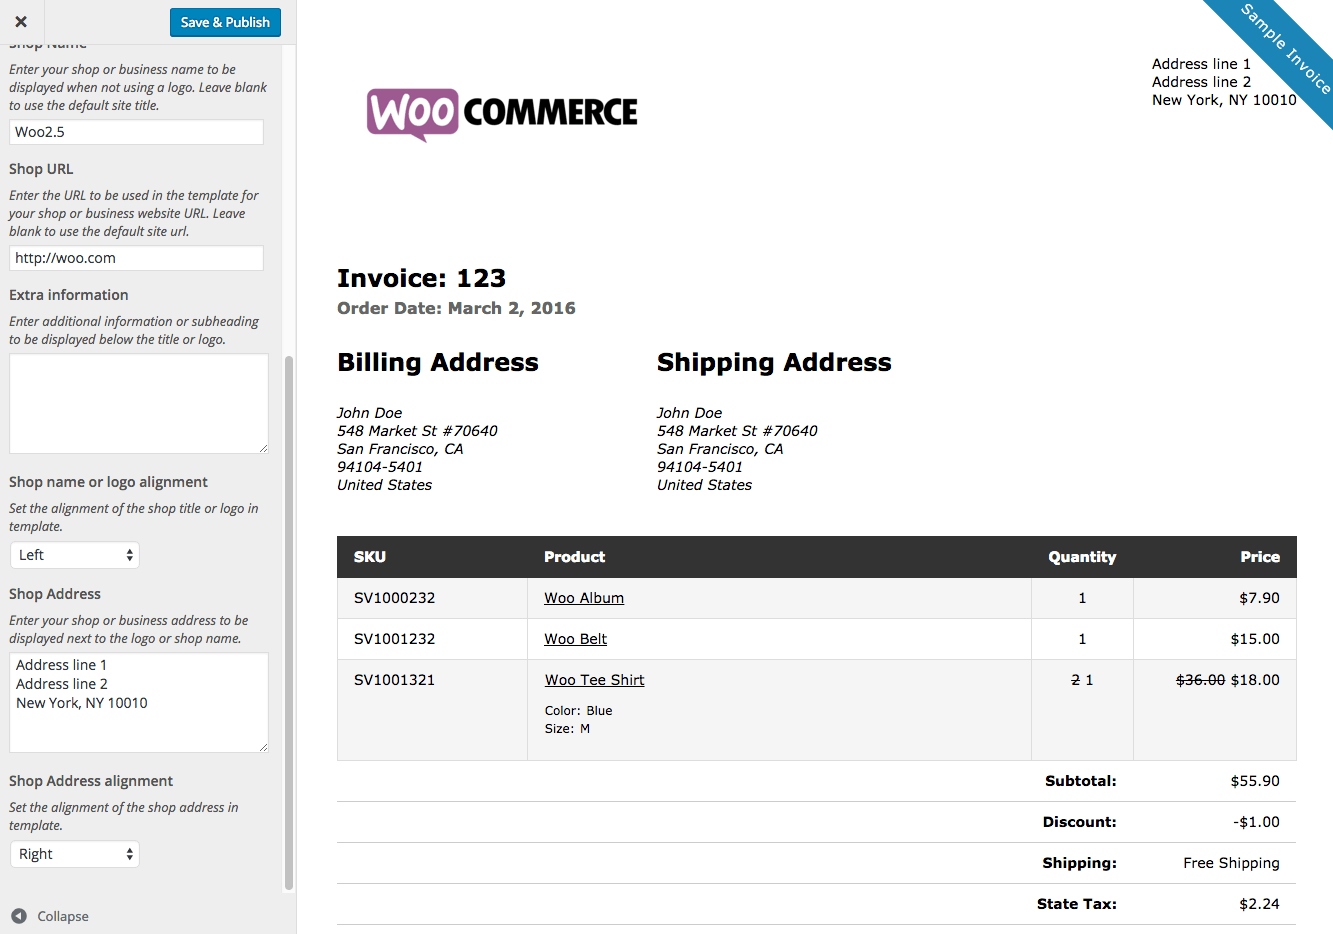 Opposenewapstandardsus  Wonderful Print Invoices Amp Packing Lists  Woocommerce With Outstanding Woocommerce Print Invoices  Packing Lists Customizer With Nice Sales Invoices Should Be Also What Does Proforma Mean On An Invoice In Addition Free Invoice Templates Printable And How To Manage Invoices As Well As How To Layout An Invoice Additionally Make Online Invoice From Woocommercecom With Opposenewapstandardsus  Outstanding Print Invoices Amp Packing Lists  Woocommerce With Nice Woocommerce Print Invoices  Packing Lists Customizer And Wonderful Sales Invoices Should Be Also What Does Proforma Mean On An Invoice In Addition Free Invoice Templates Printable From Woocommercecom